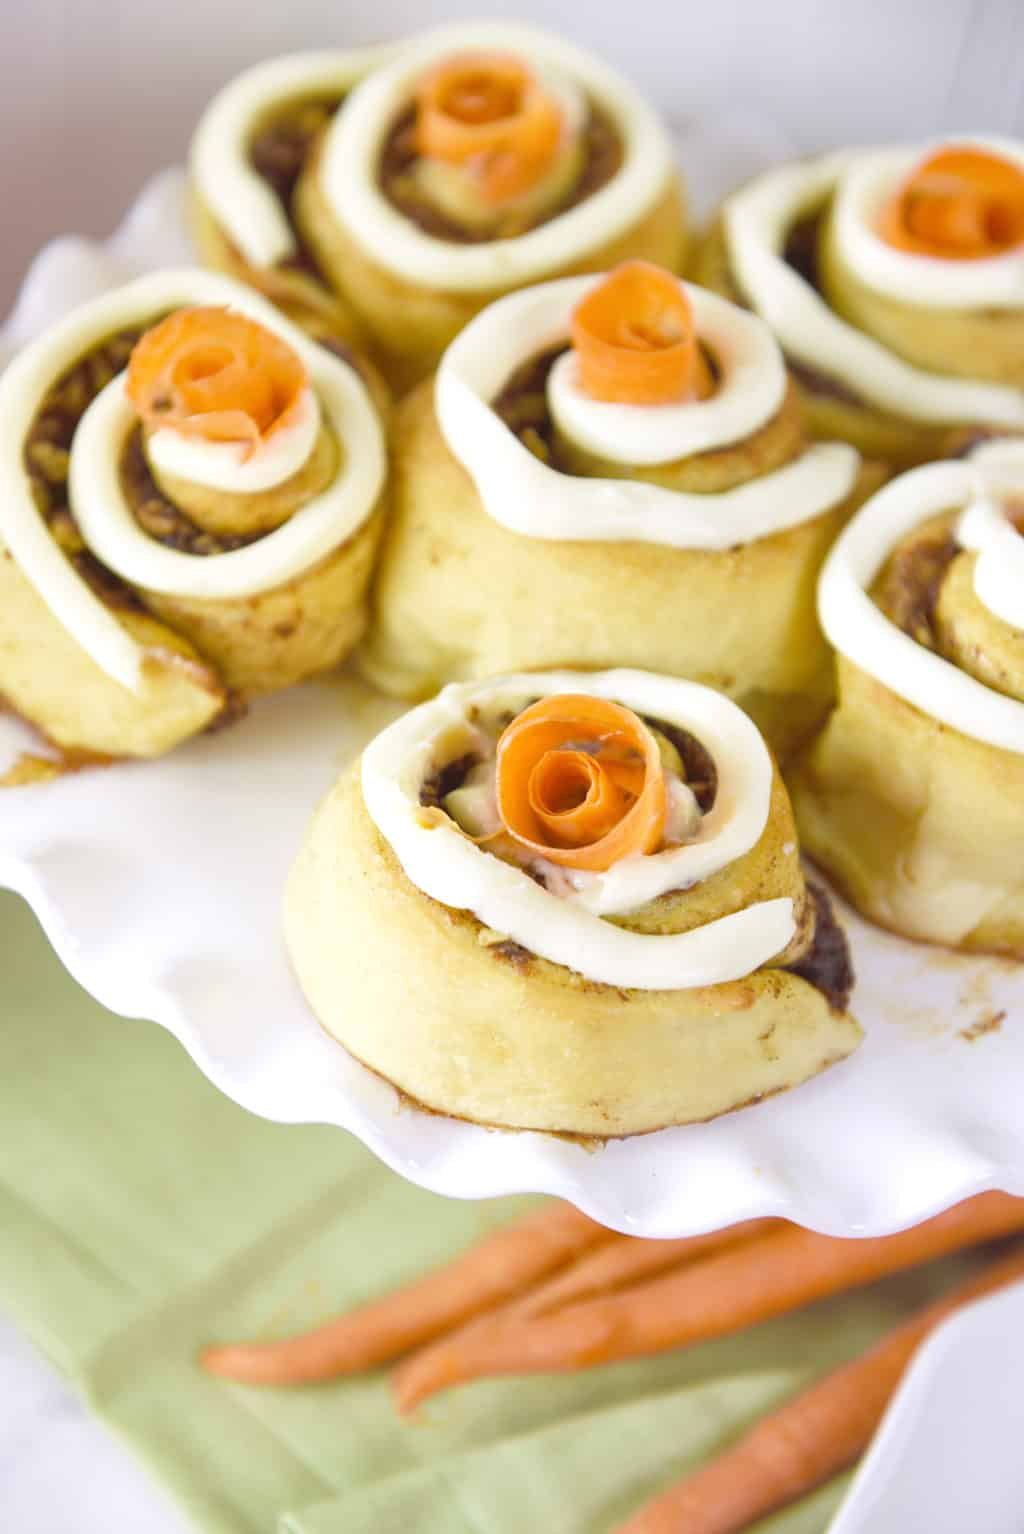 Carrot Cake Cinnamon Rolls!! All the flavors of carrot cake wrapped up in a cinnamon roll! Such a perfect Easter brunch food.